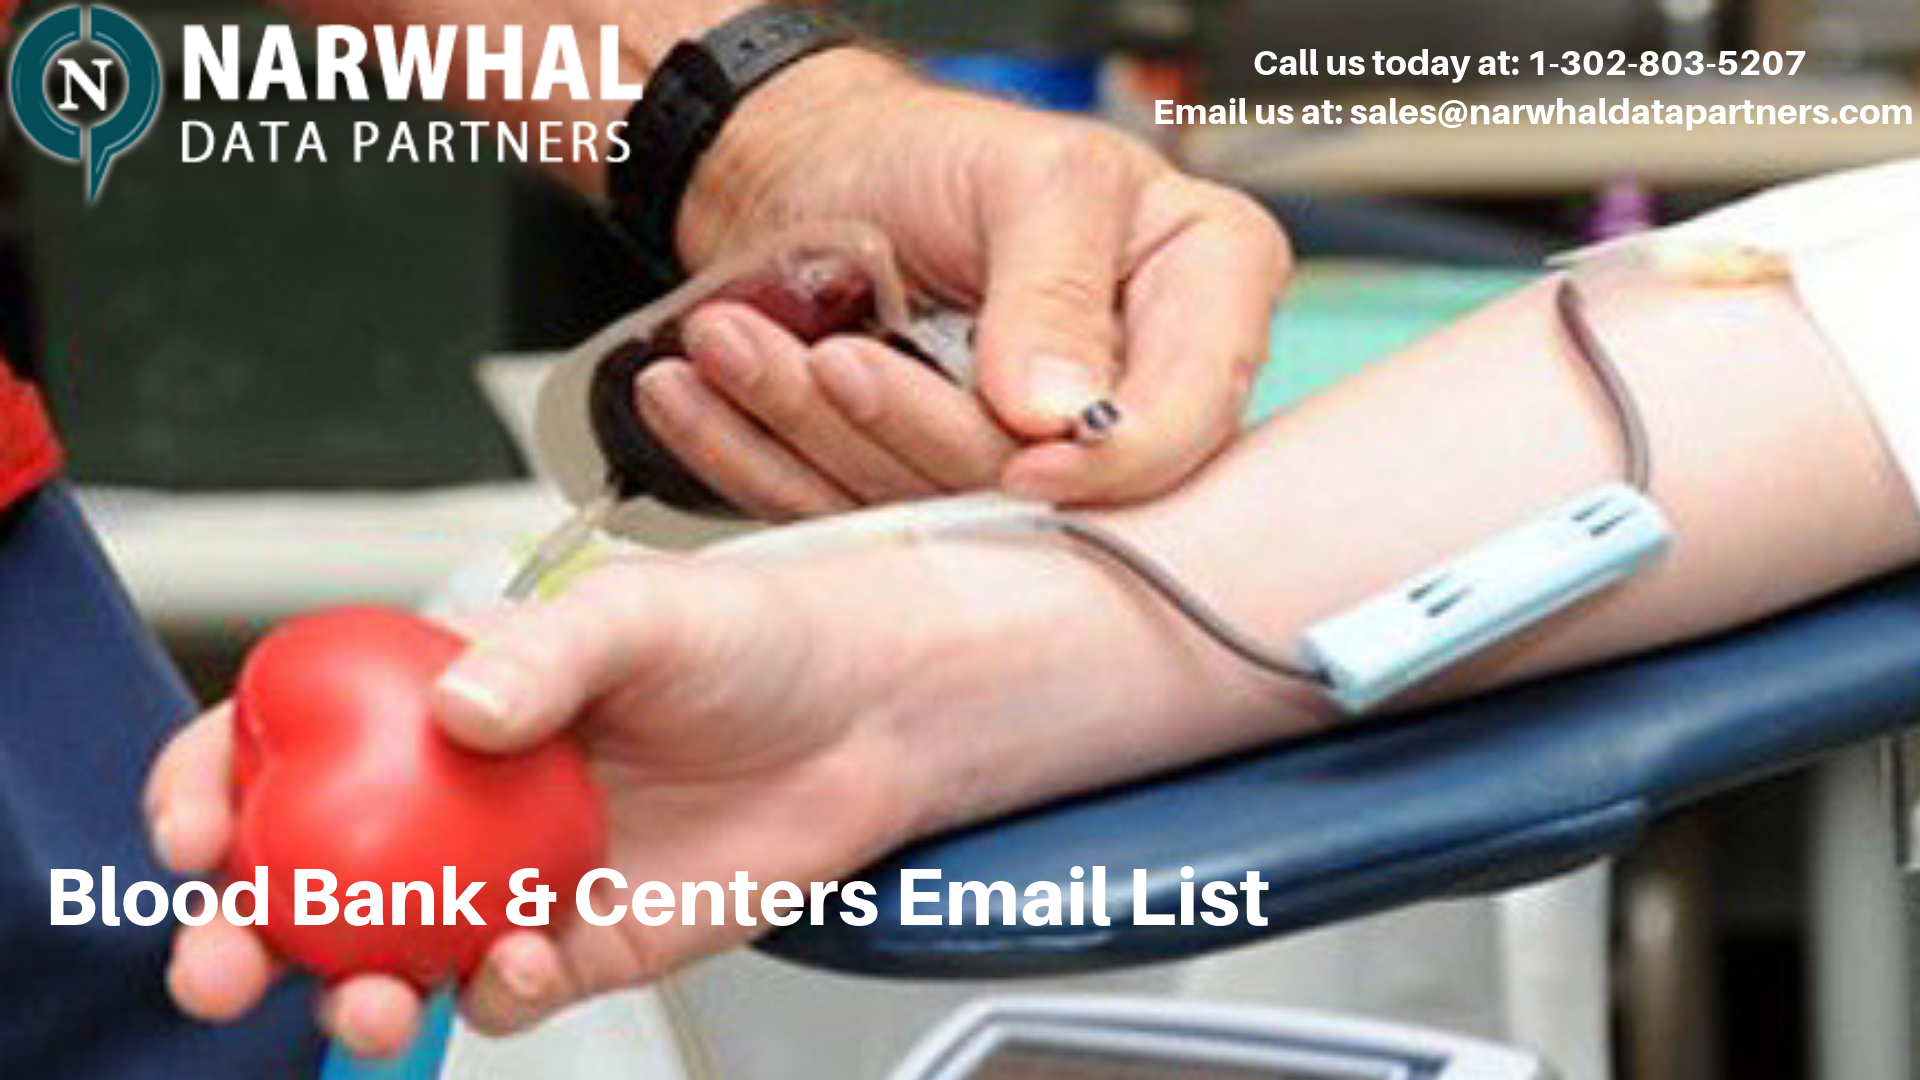 http://narwhaldatapartners.com/blood-bank-and-centers-email-list.html